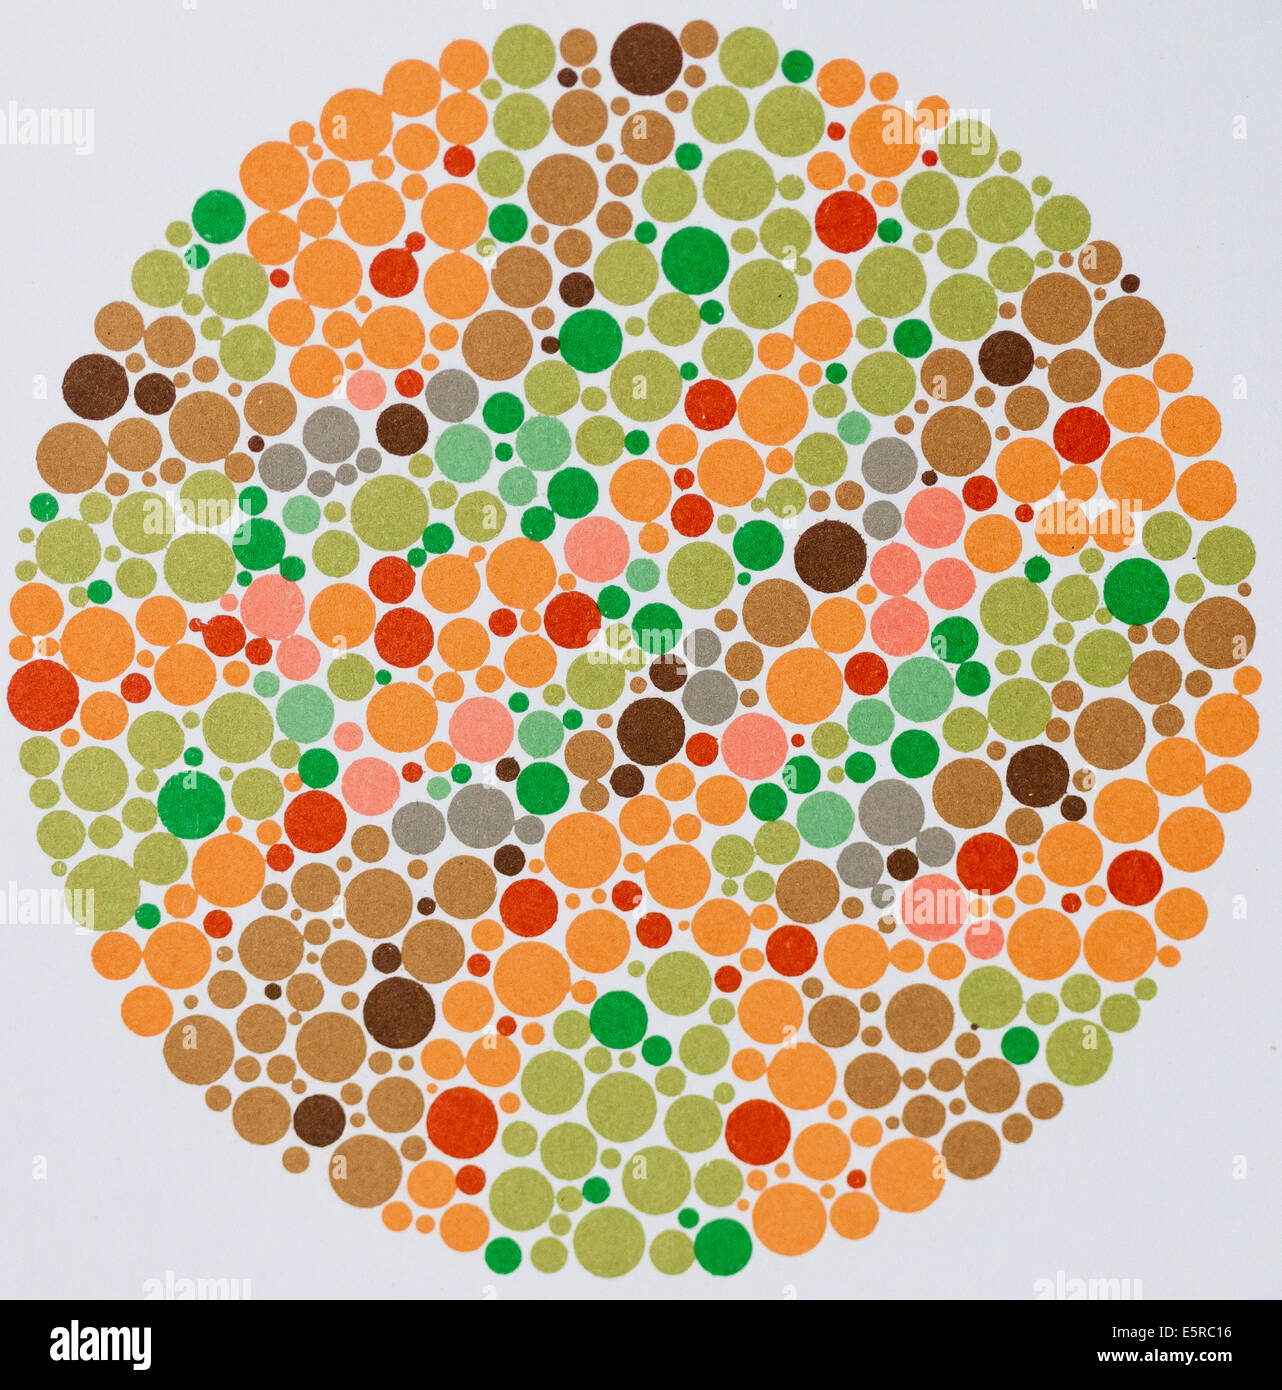 COLOUR BLINDNESS TEST BOOK EBOOK DOWNLOAD